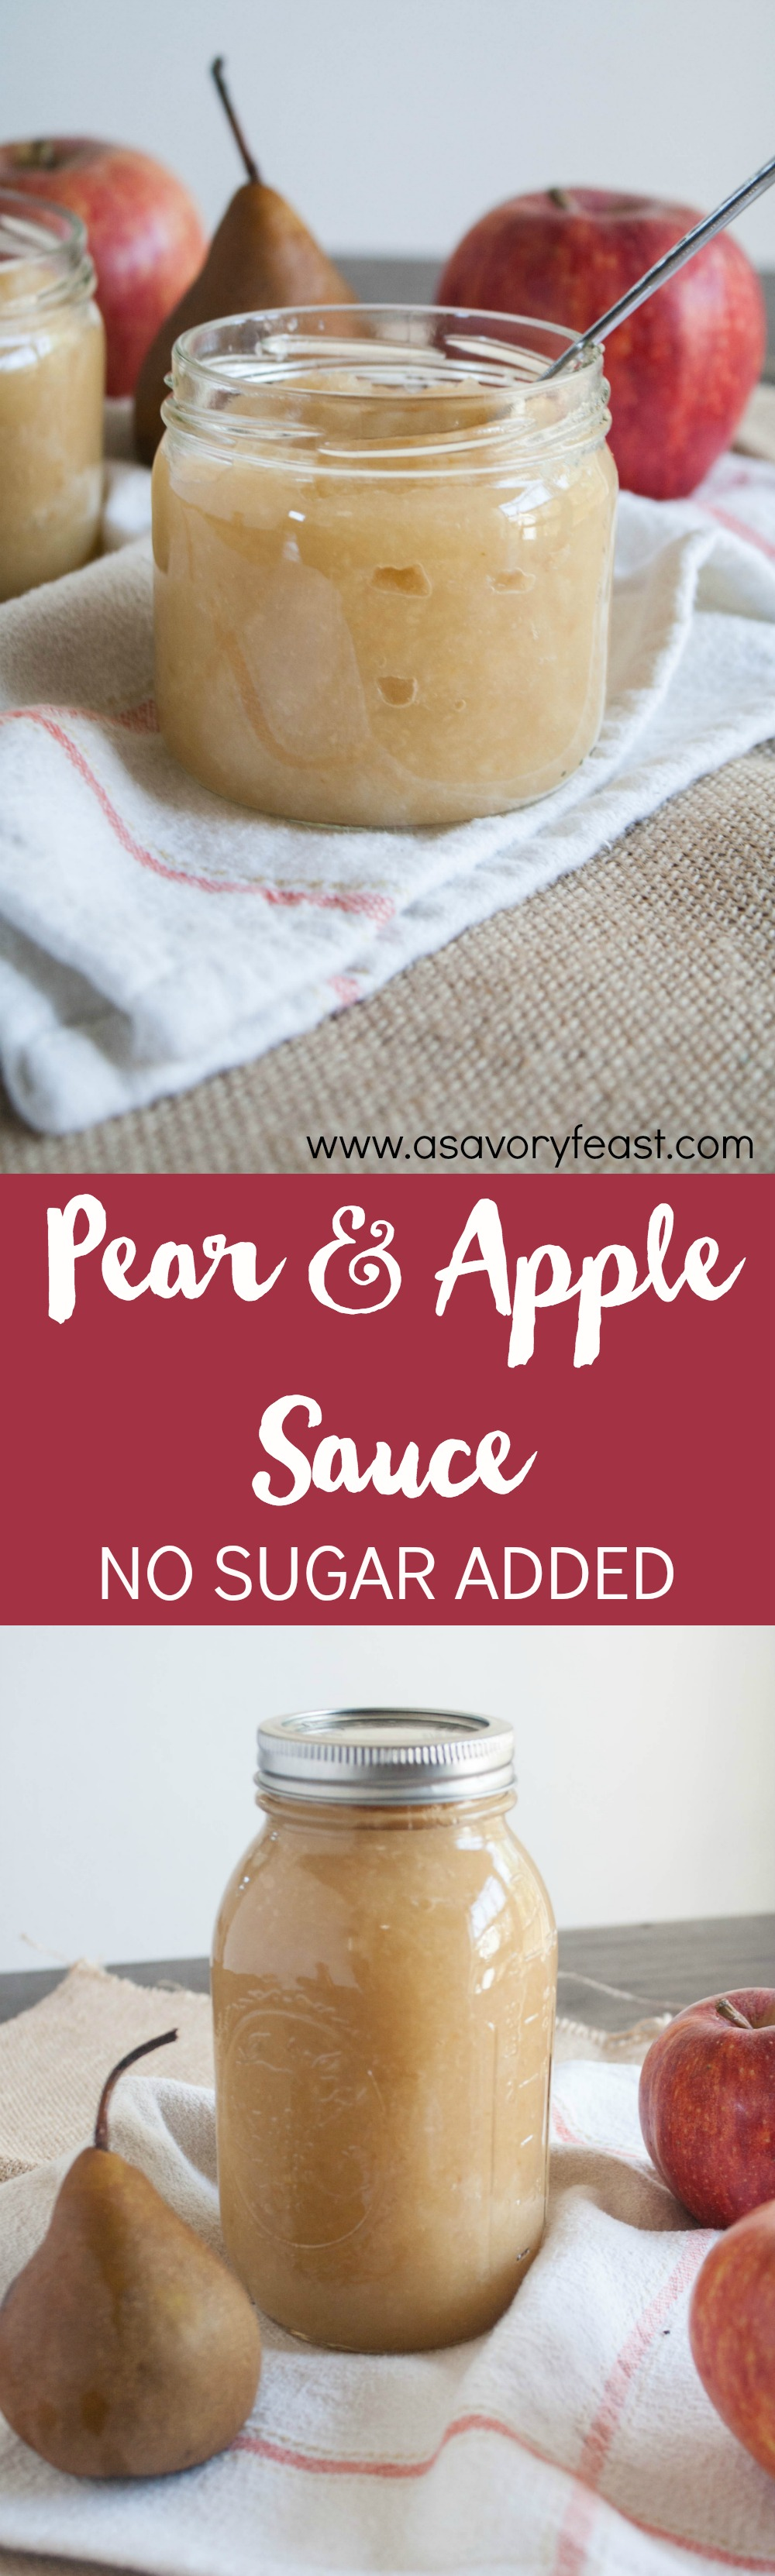 Homemade Pear and Apple Sauce is an easy recipe that kids and adults will love! Fresh apples and pears made into a homemade sauce with no added sugar. You won't believe how easy this recipe is to make at home! Once you try it, you'll never go back.